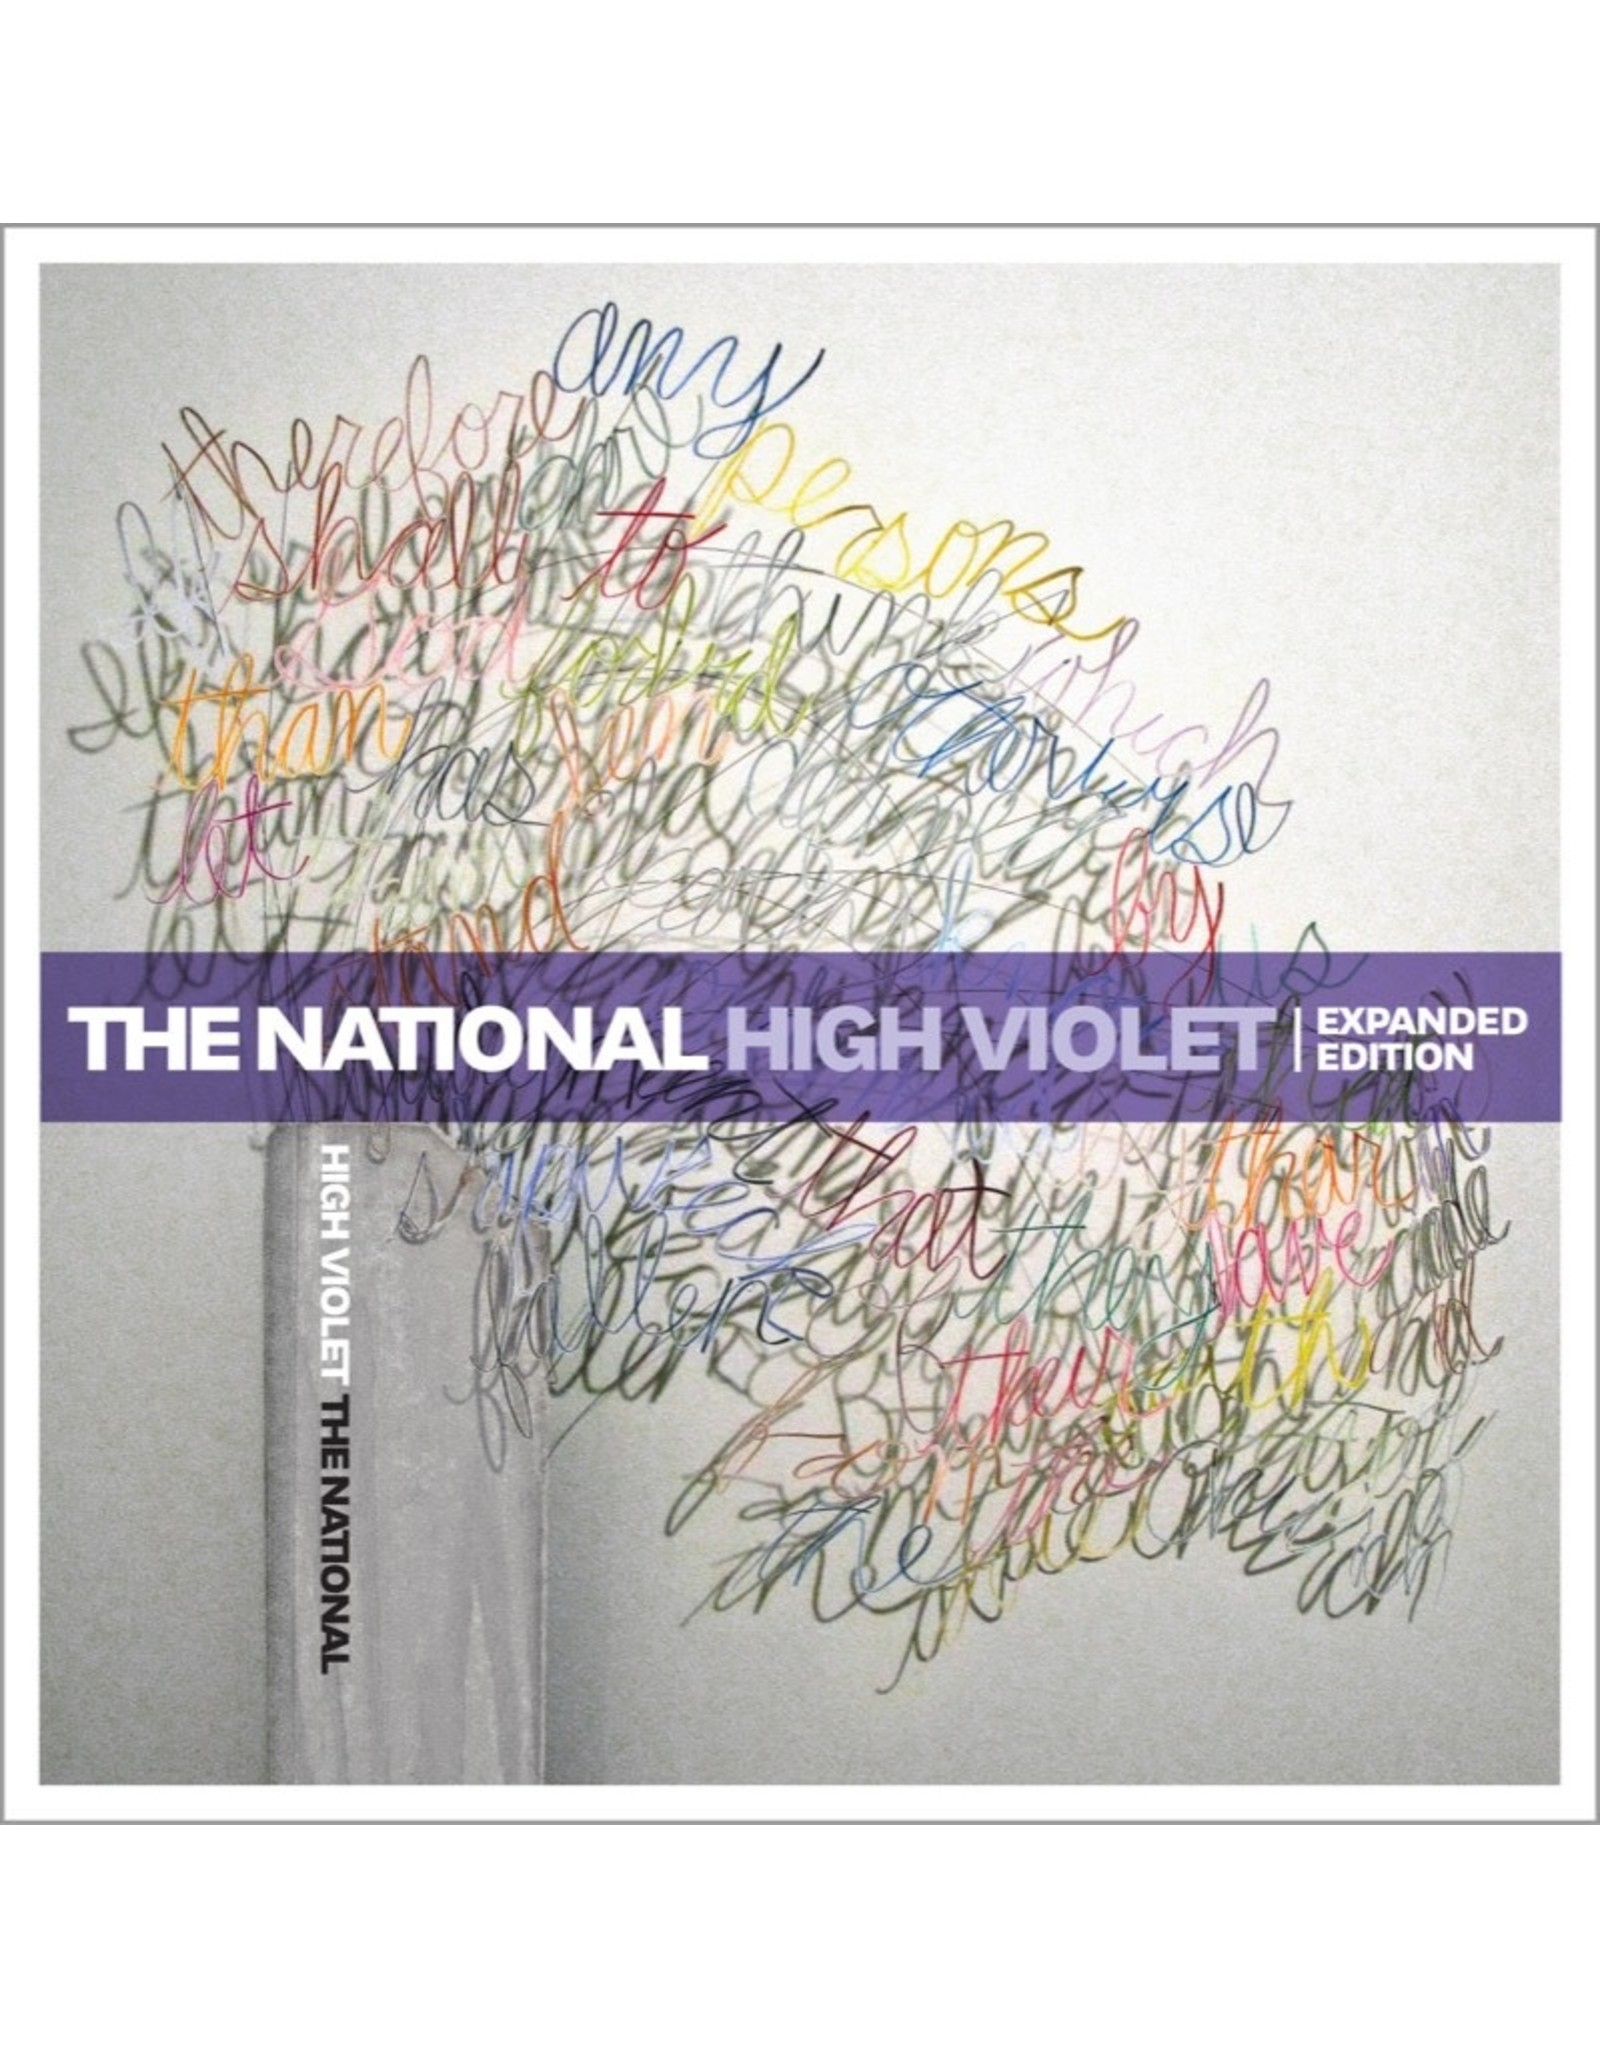 National - High Violet 10th Anniversary Edition LP